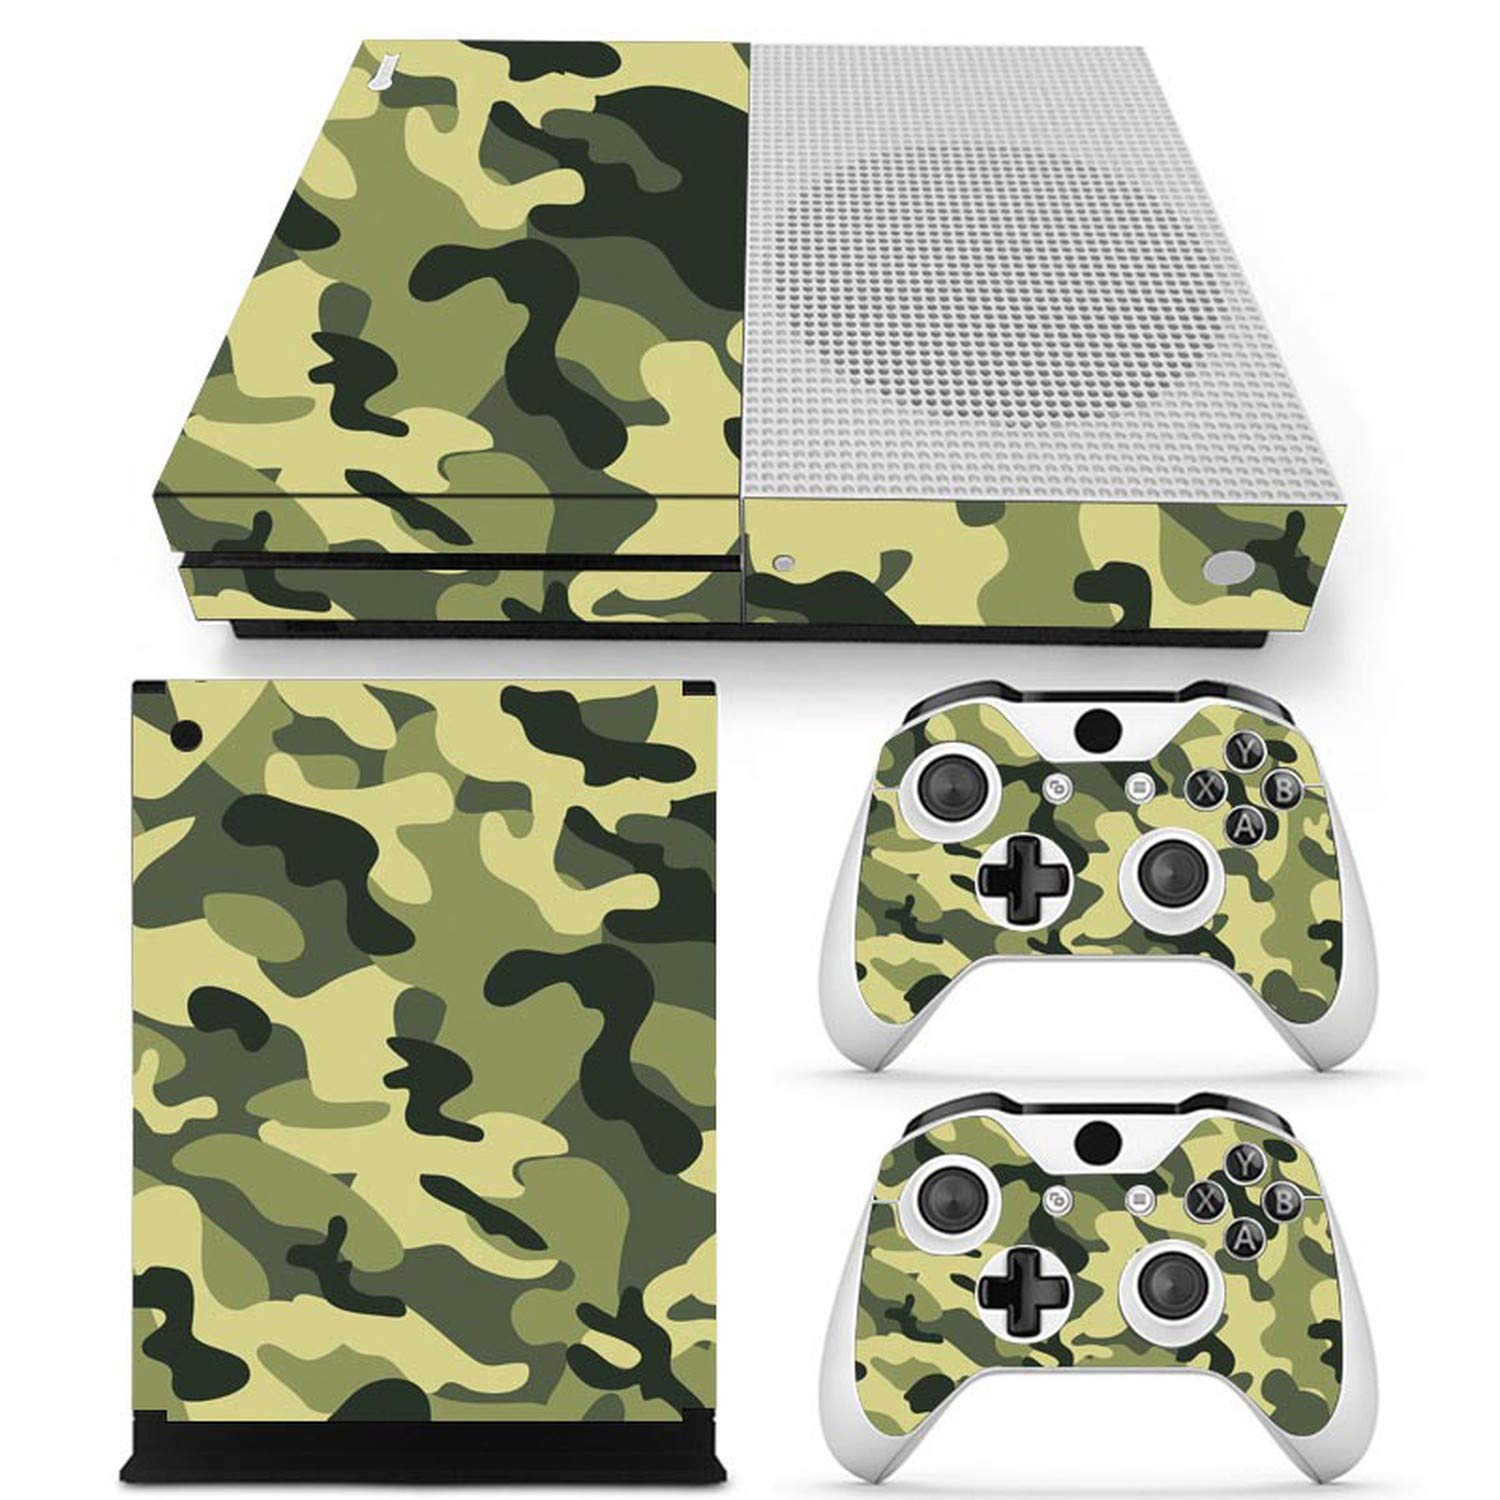 Camouflage Vinyl Skin Sticker Protector for Microsoft Xbox One SLIM and 2 controller skins Stickers for XBOXONE S,2